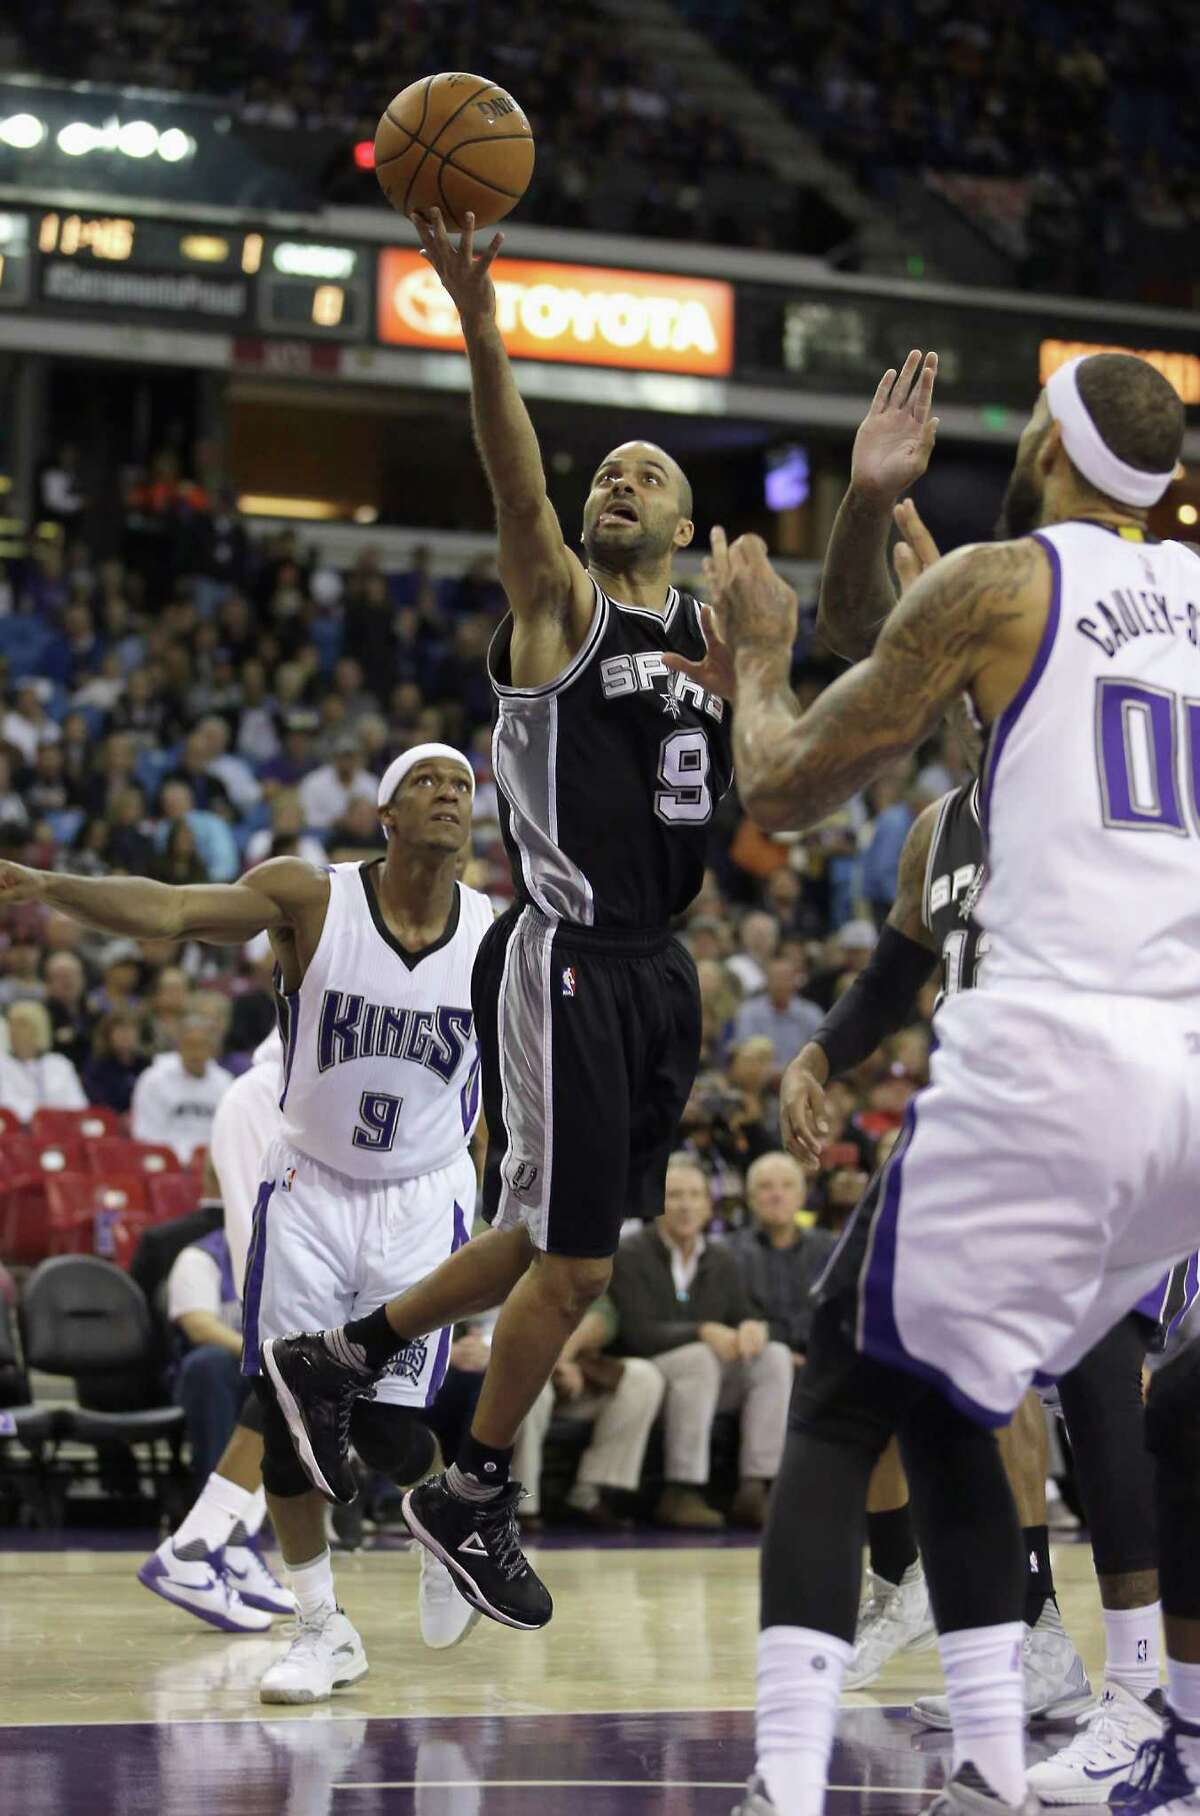 San Antonio Spurs guard Tony Parker, center, of France, goes the basket between Sacramento Kings' Rajon Rondo, left, and Willie Cauley-Stein, right, during the first quarter of an NBA basketball game in Sacramento, Calif., Monday, Nov. 9, 2015.(AP Photo/Rich Pedroncelli)